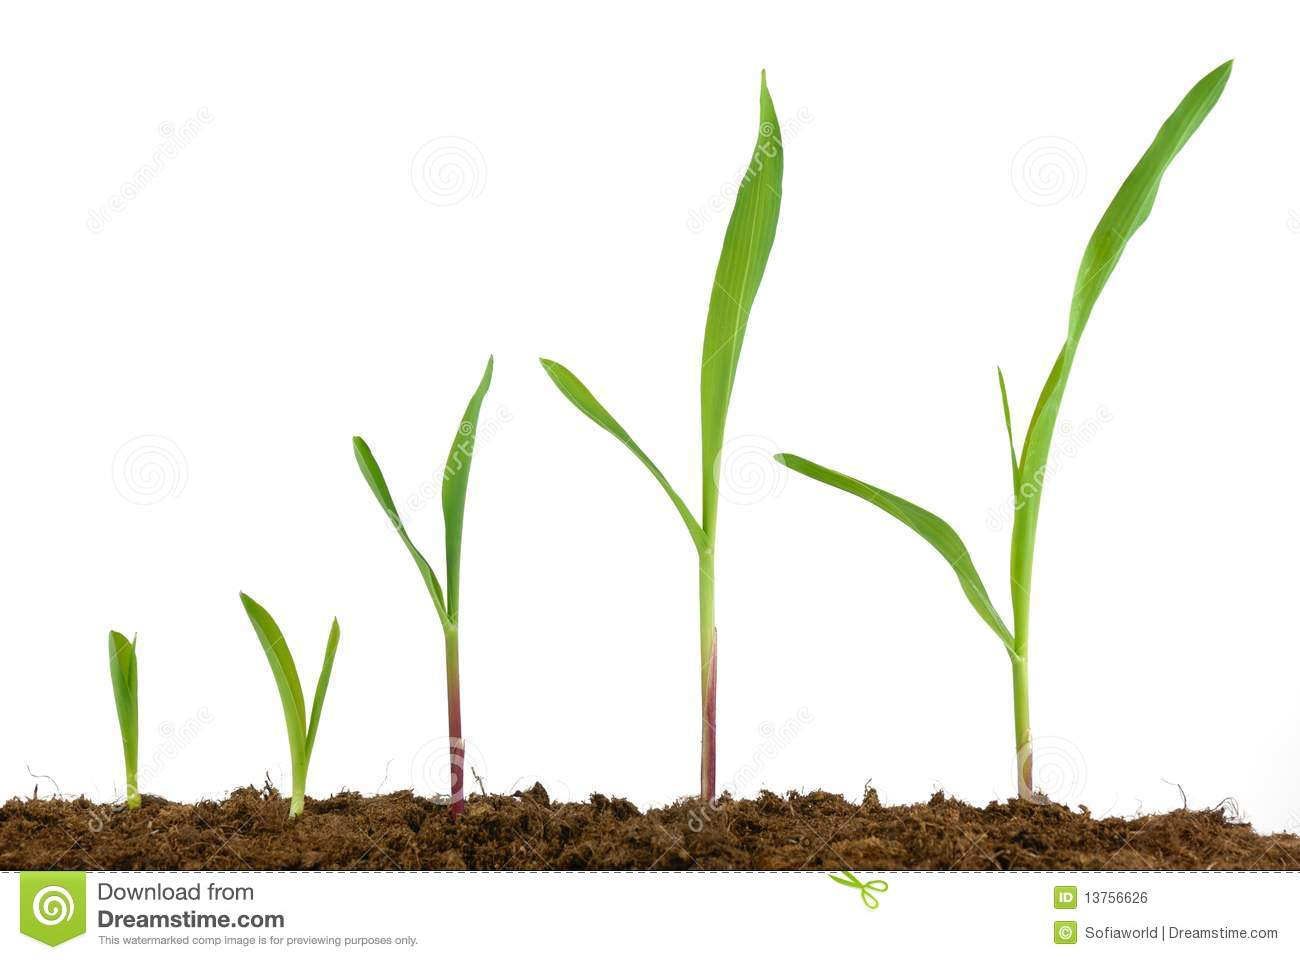 Corn seedling growing